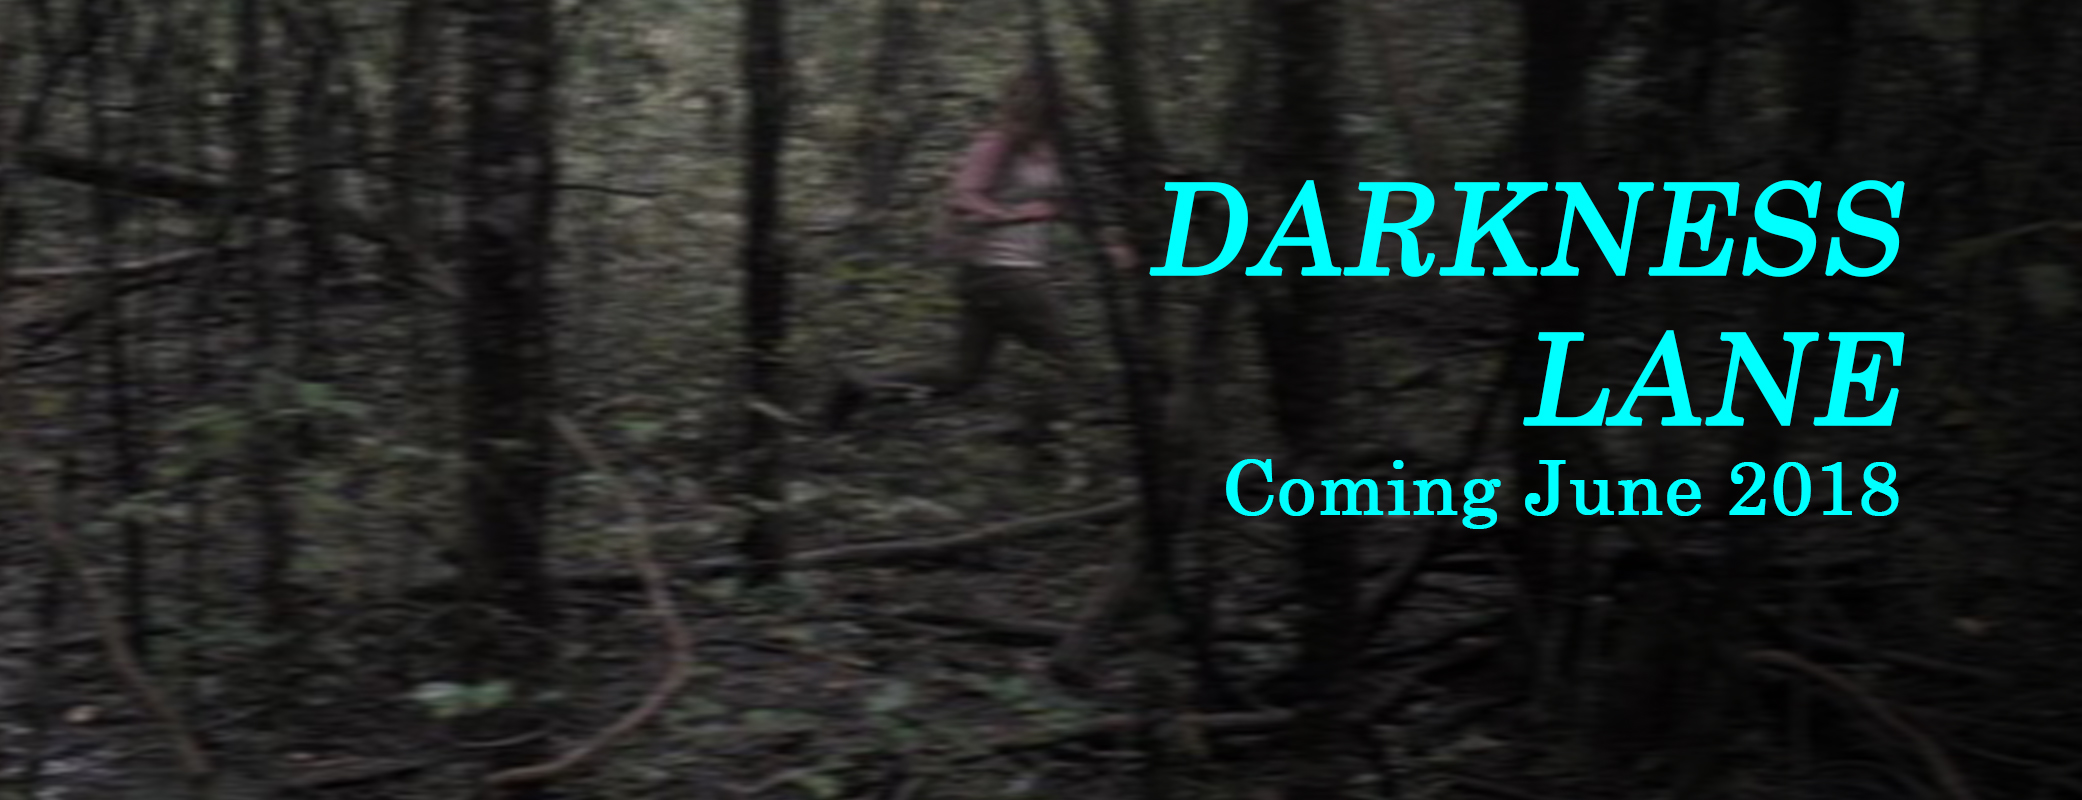 DARKNESS LANE, Second Book Coming June 2018